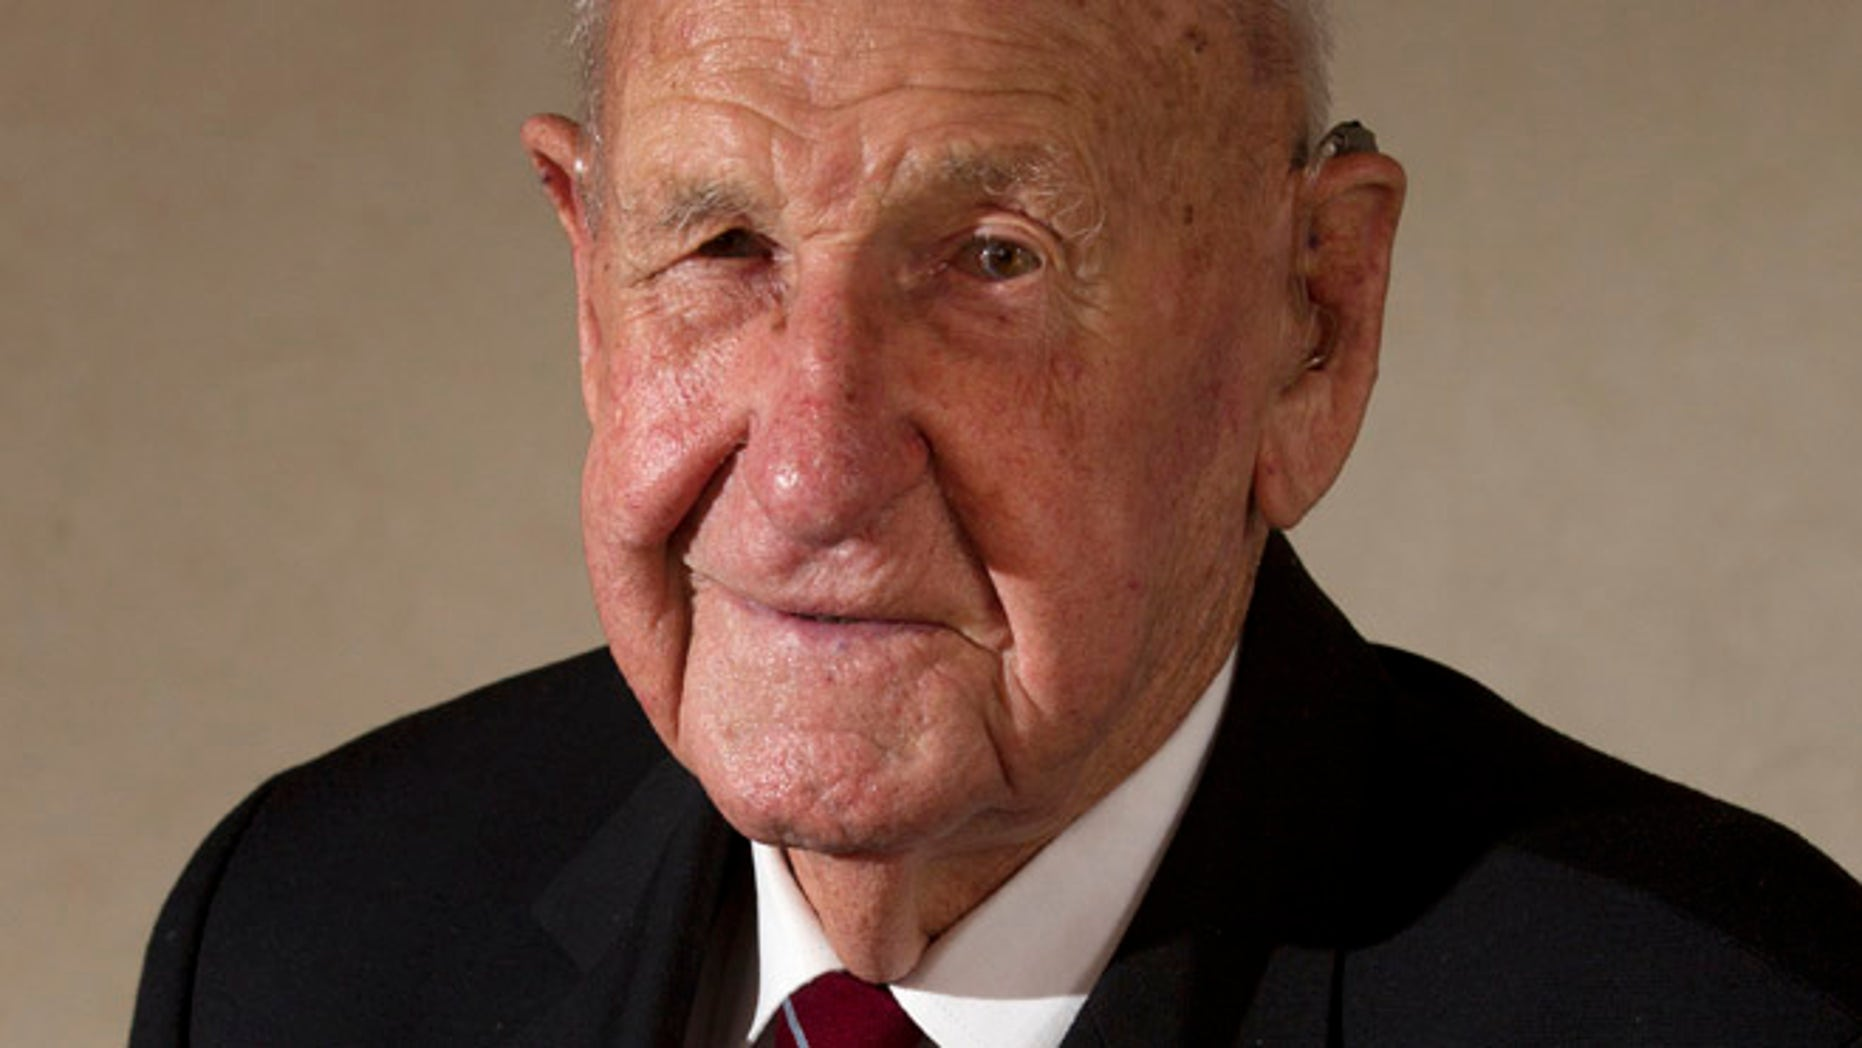 March 3: Veteran Les Munro poses for a photo at his home in Tauranga, New Zealand.